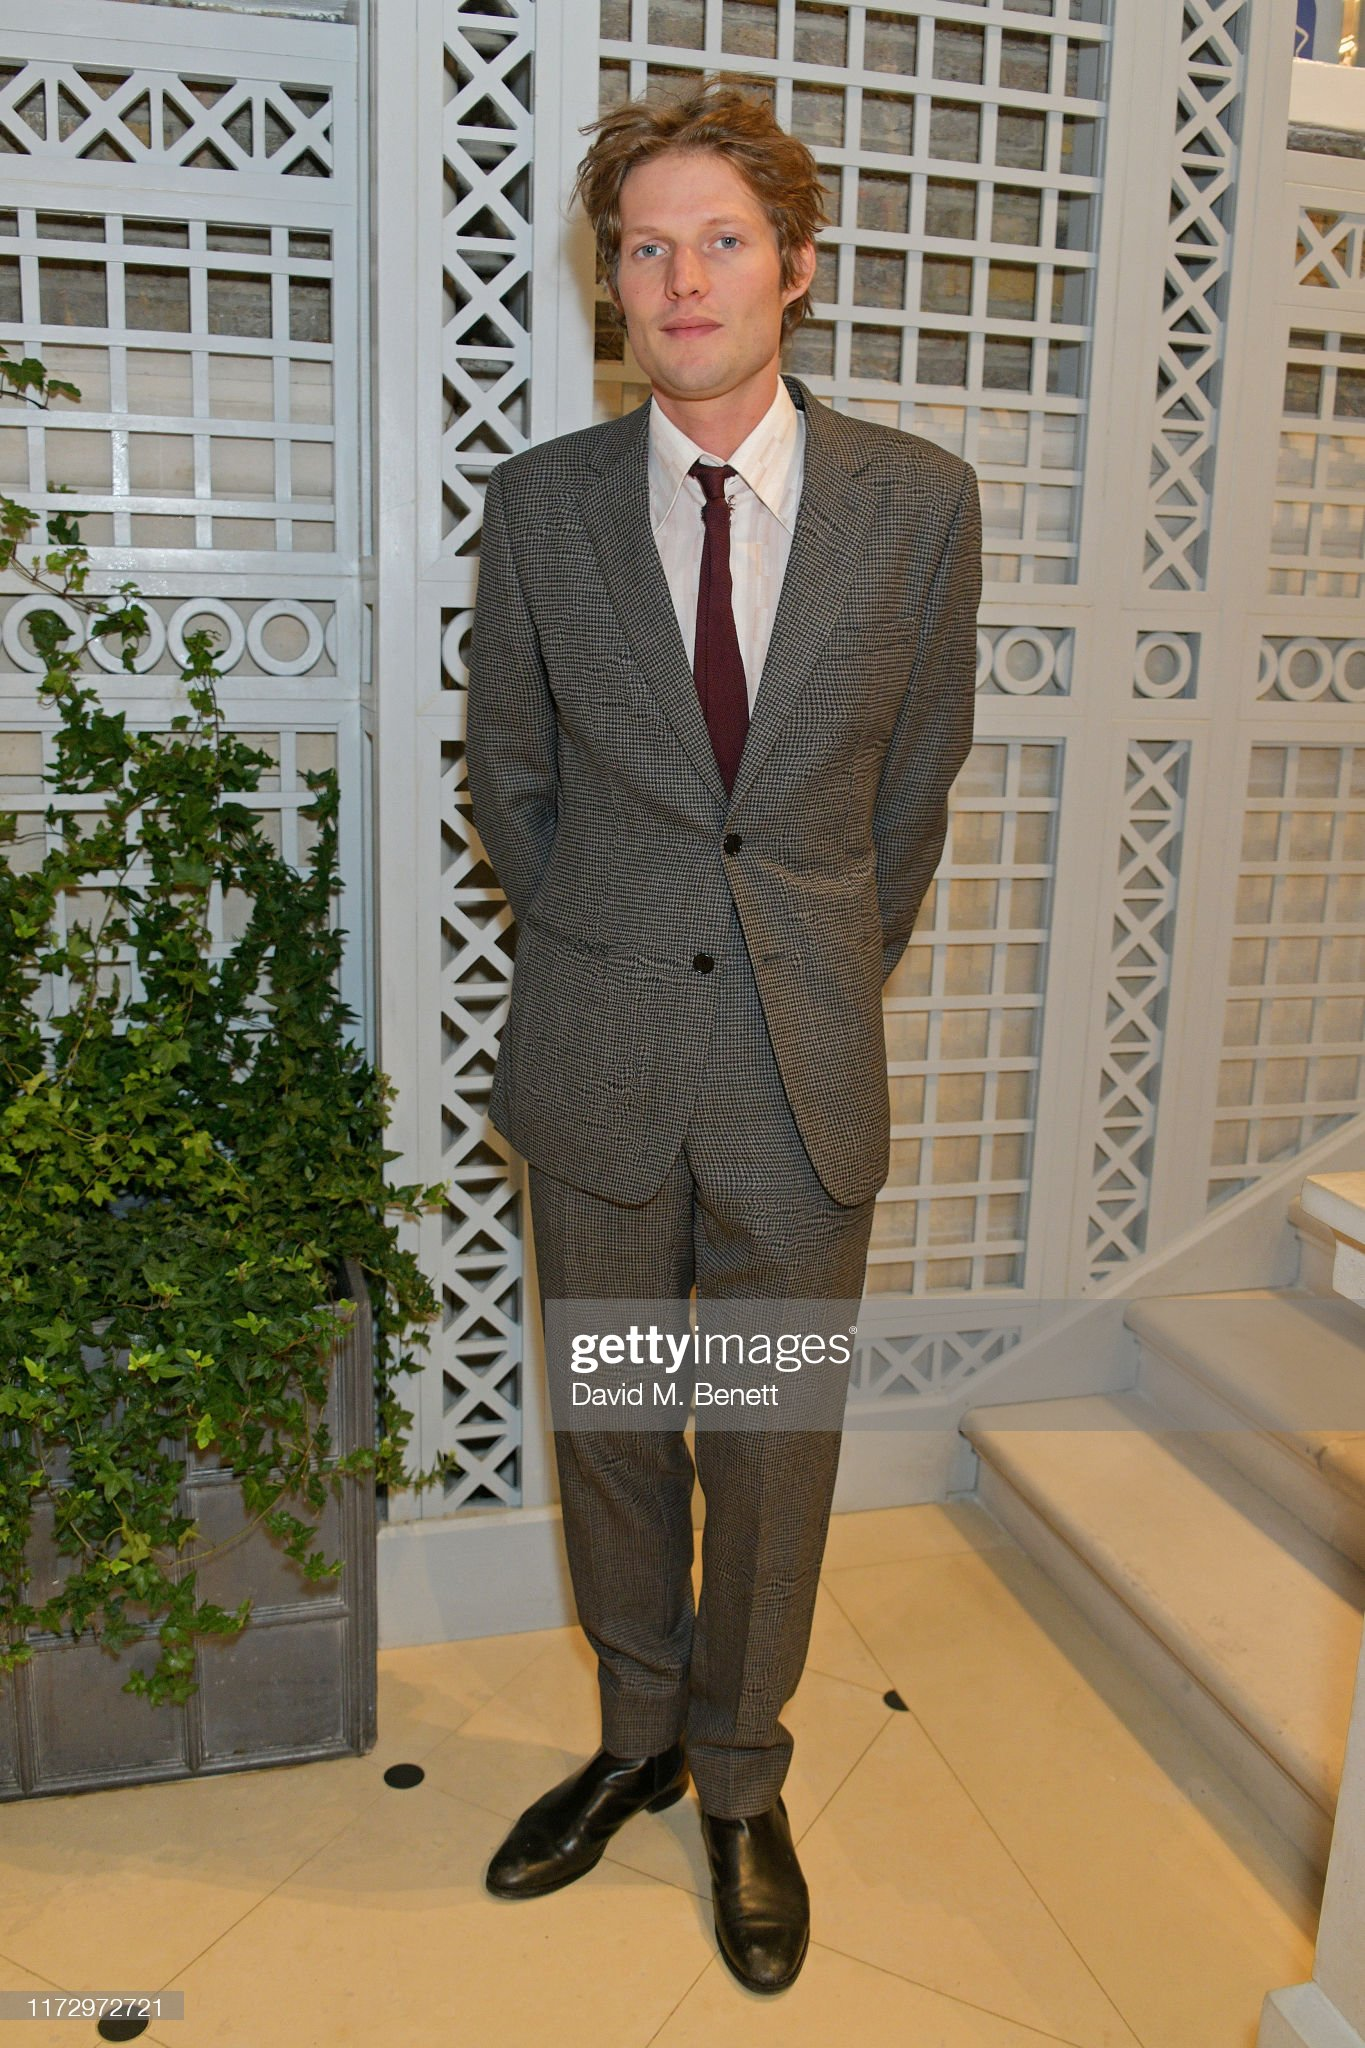 https://media.gettyimages.com/photos/nikolai-von-bismarck-attends-the-dior-sessions-book-launch-on-october-picture-id1172972721?s=2048x2048